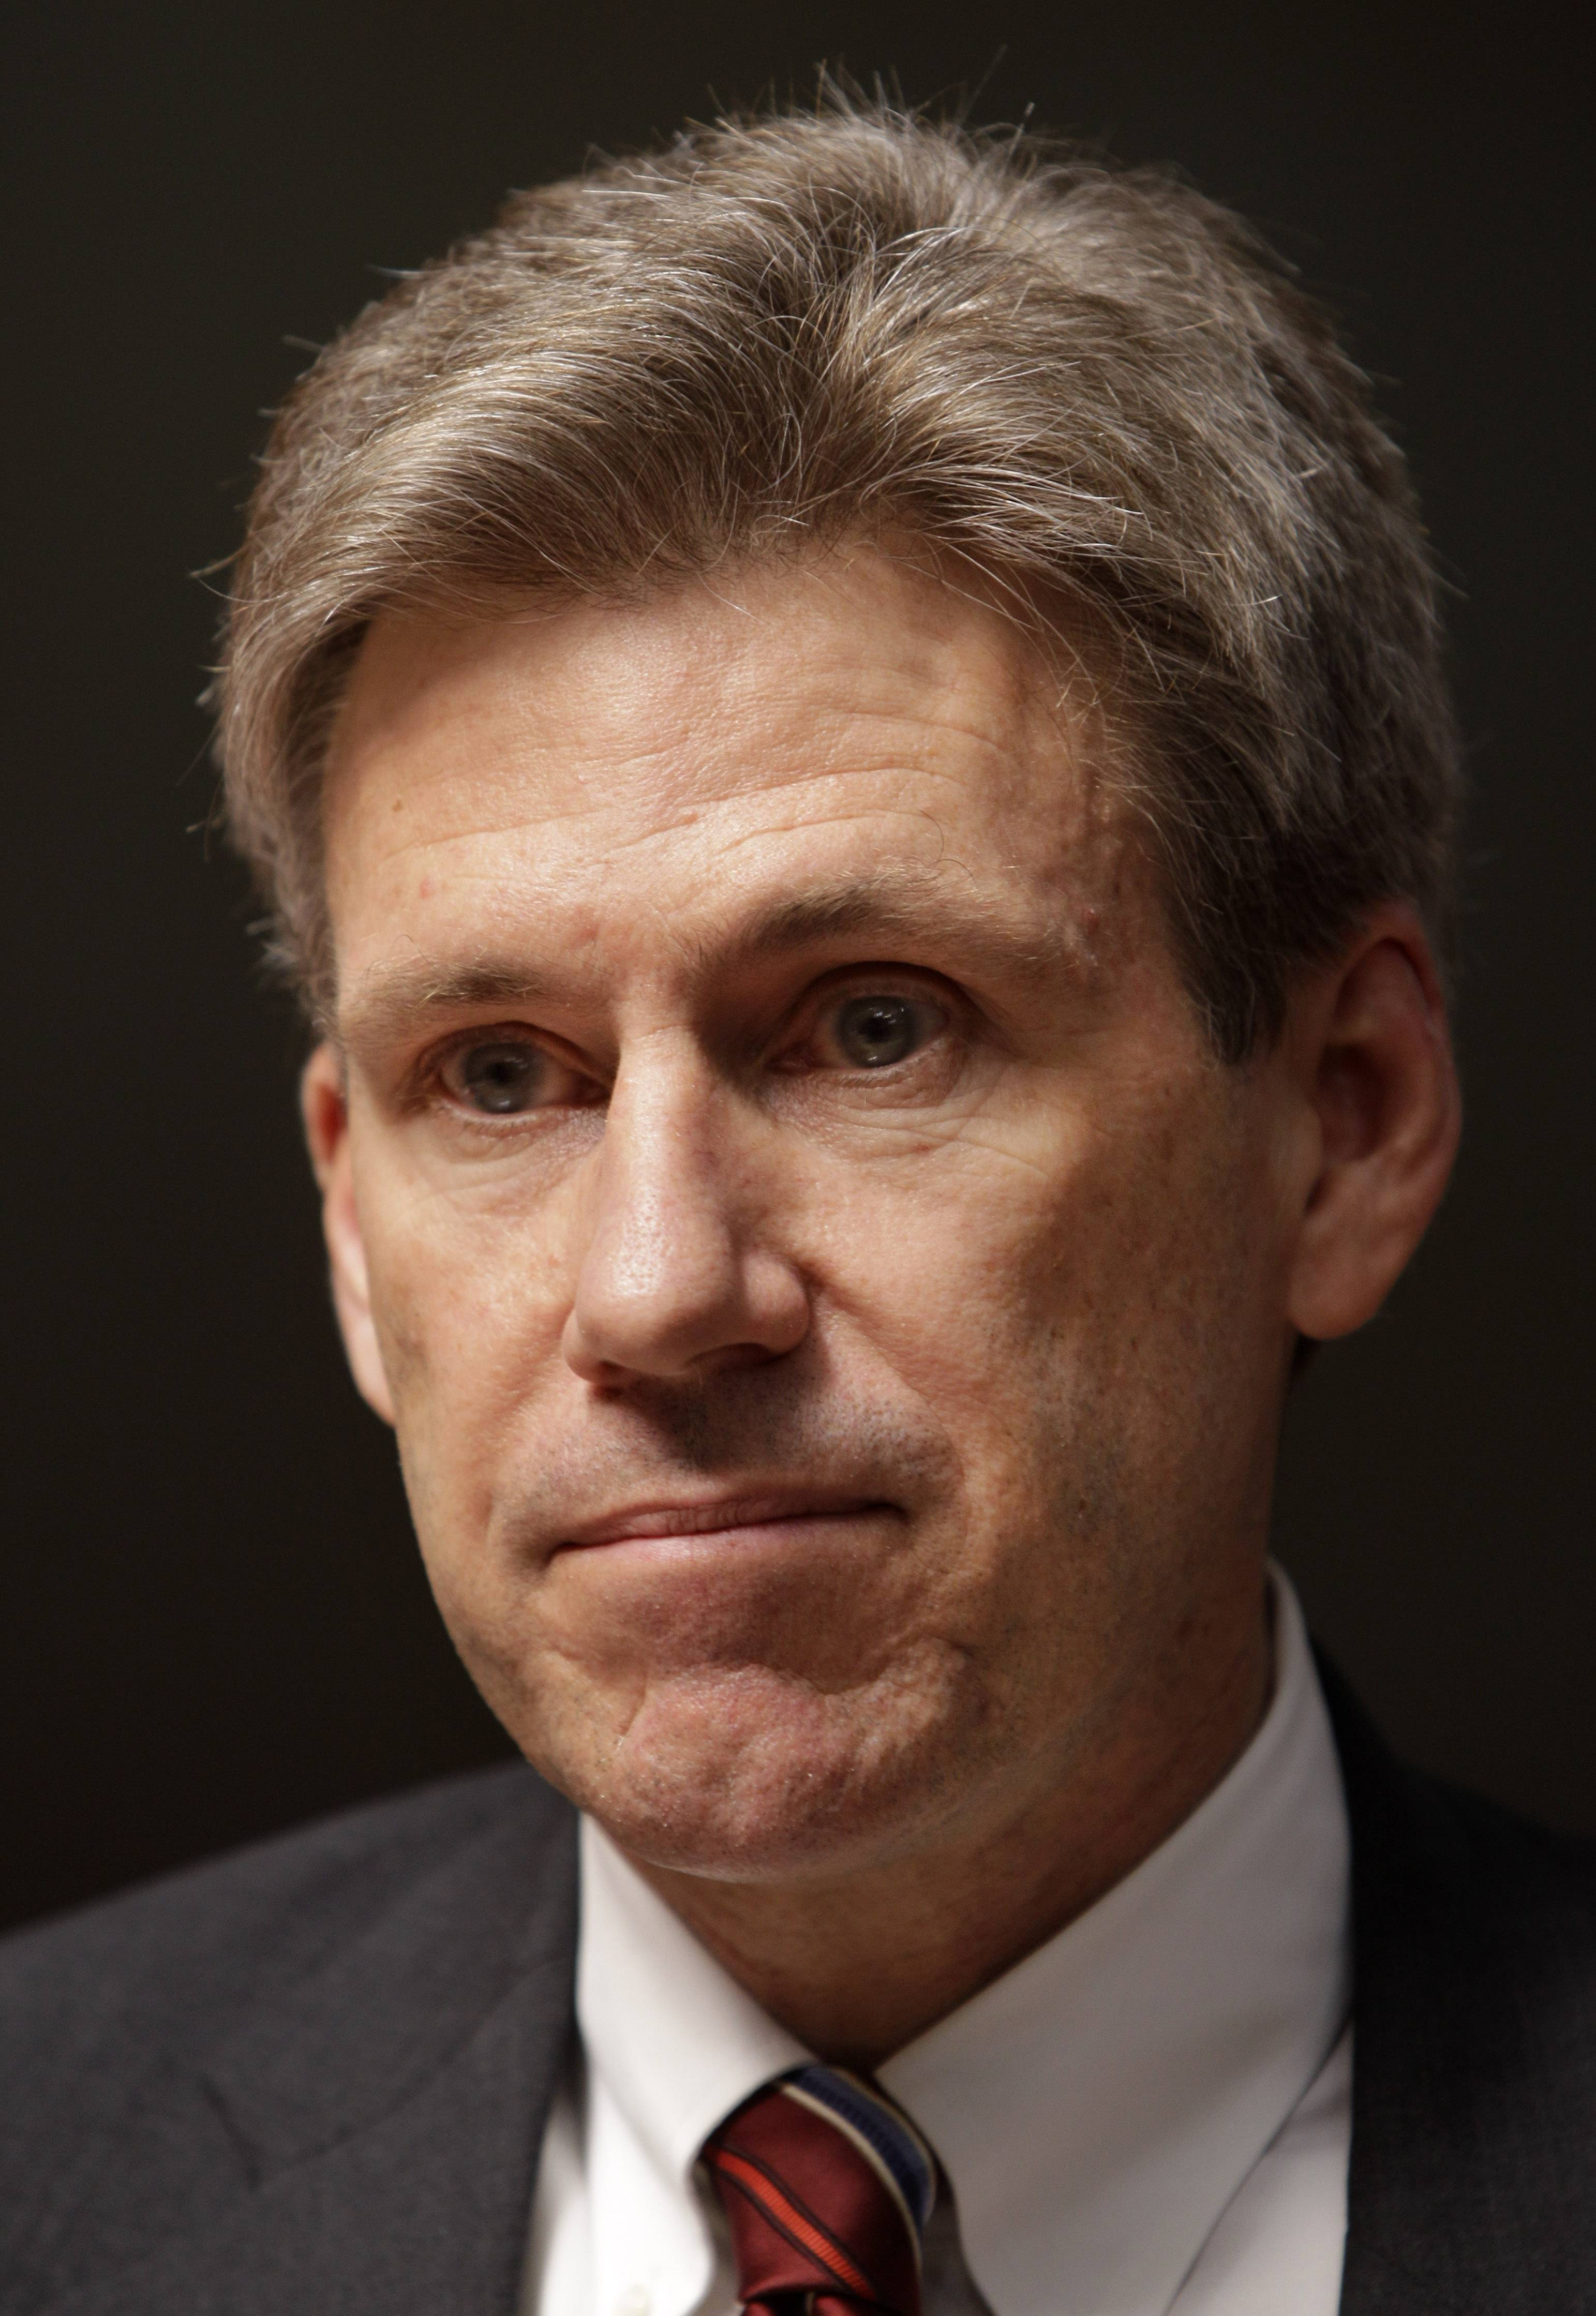 U.S. envoy Chris Stevens was killed in the U.S. consulate attack in Benghazi, Libya, Sept. 11, 2012.